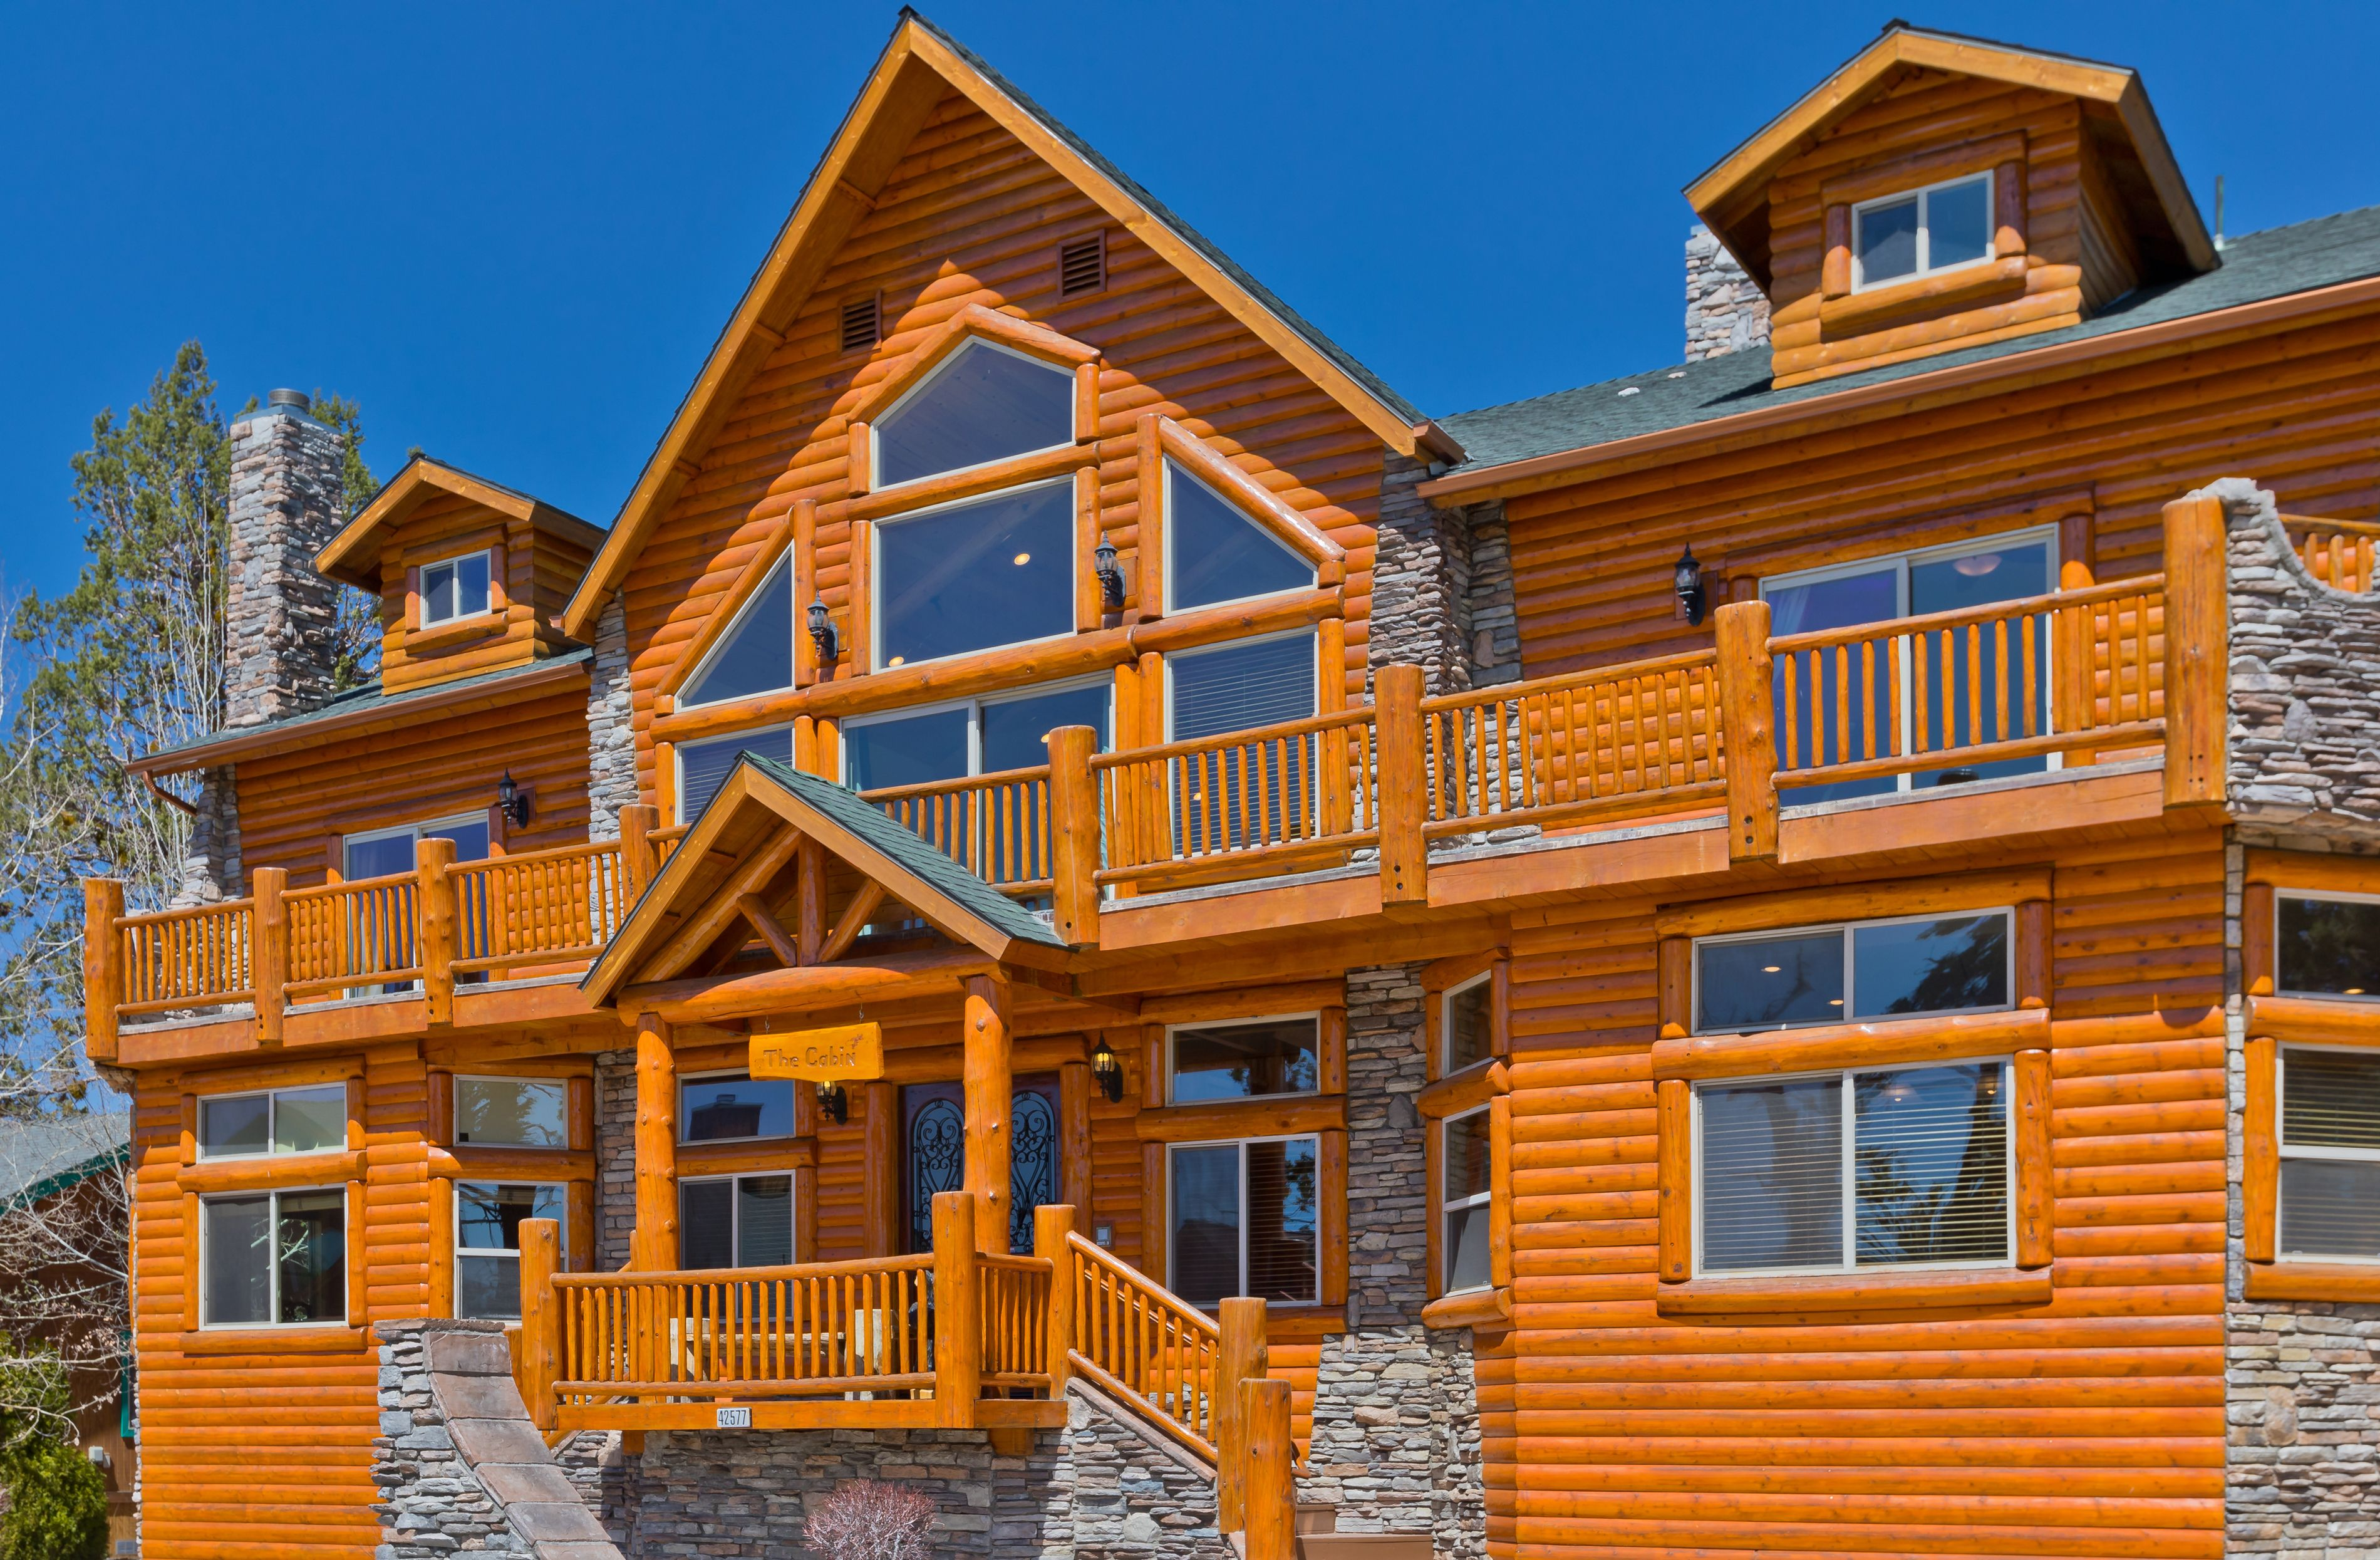 The Cabin A Perfect Vacation Home In Big Bear Lake For Your Luxurious Mountain Getaway Cabin Vacation Cabin Rentals Bear Cabin